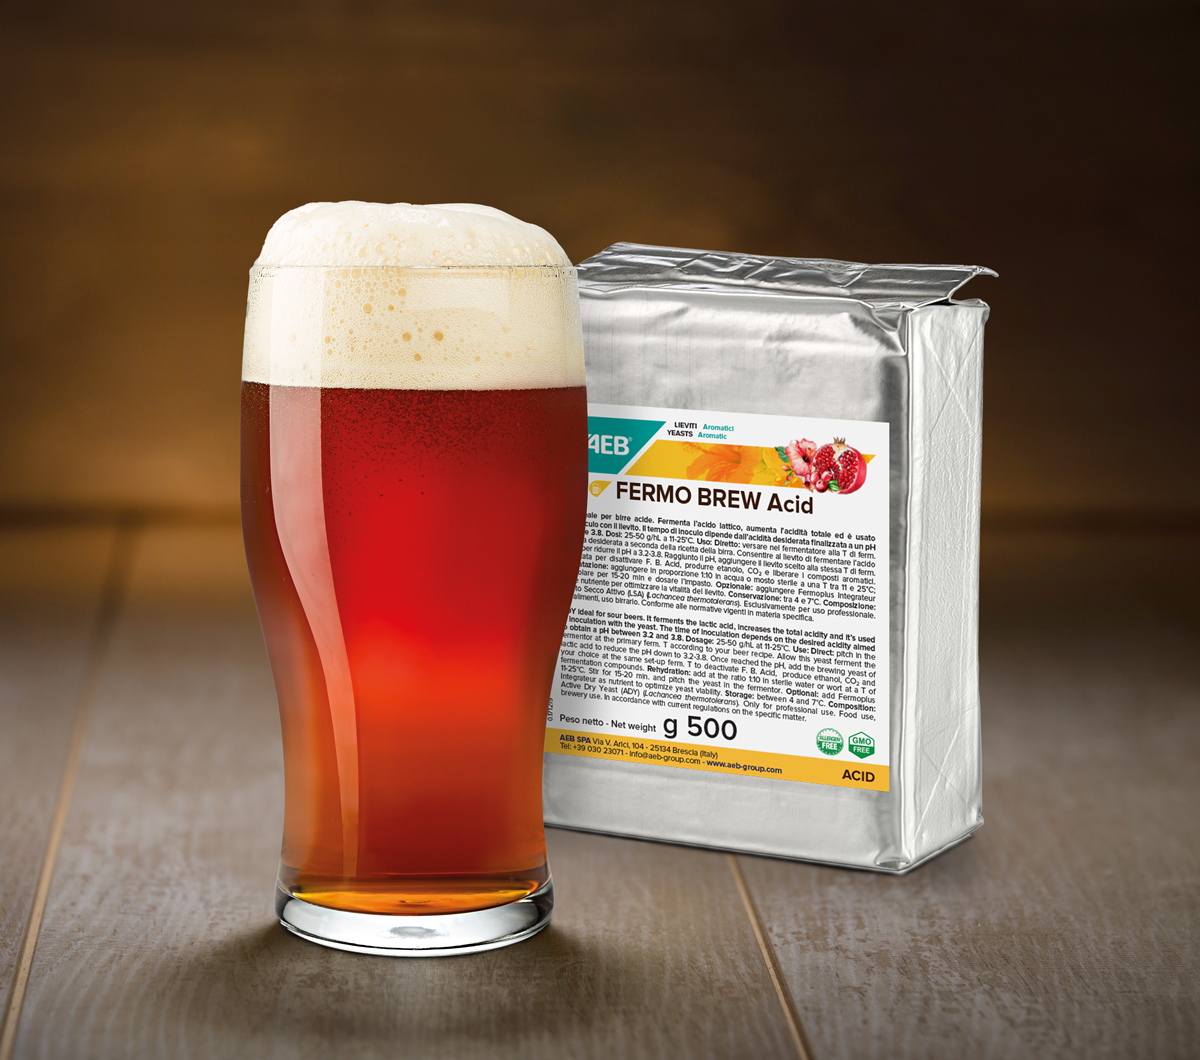 FERMO BREW ACID: THE PERFECT CHOICE FOR SOUR BEERS